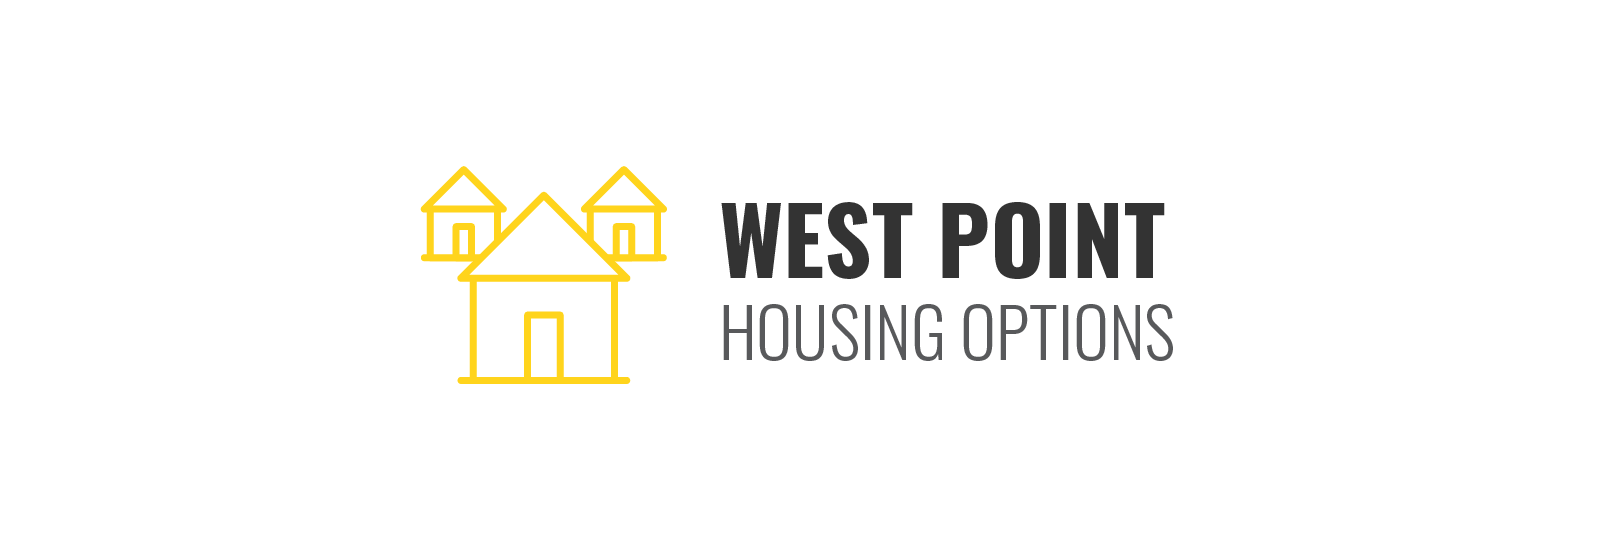 West Point Housing Options